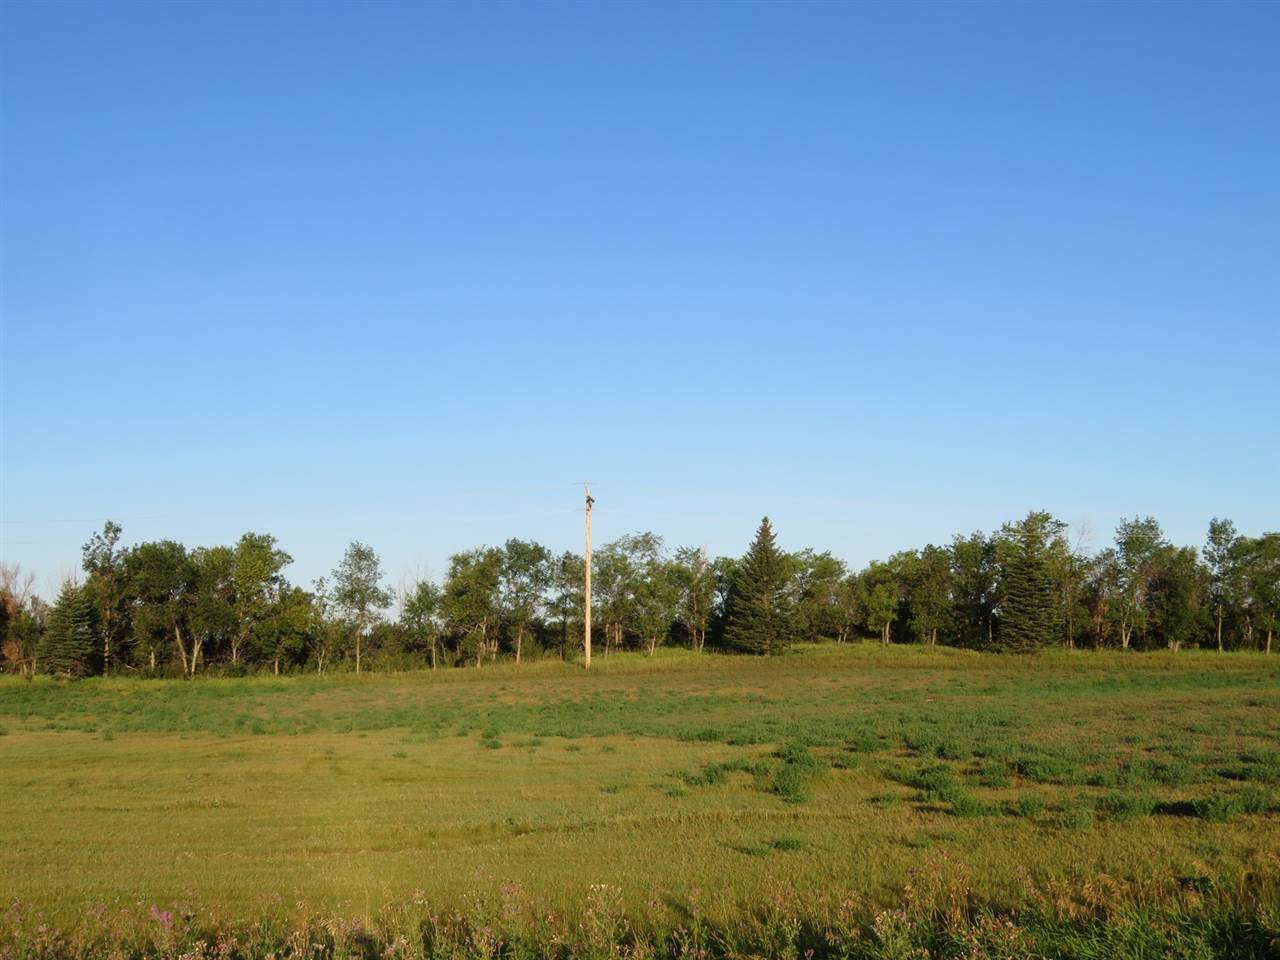 6483-Lot 4 81st Ave. Nw - Photo 1